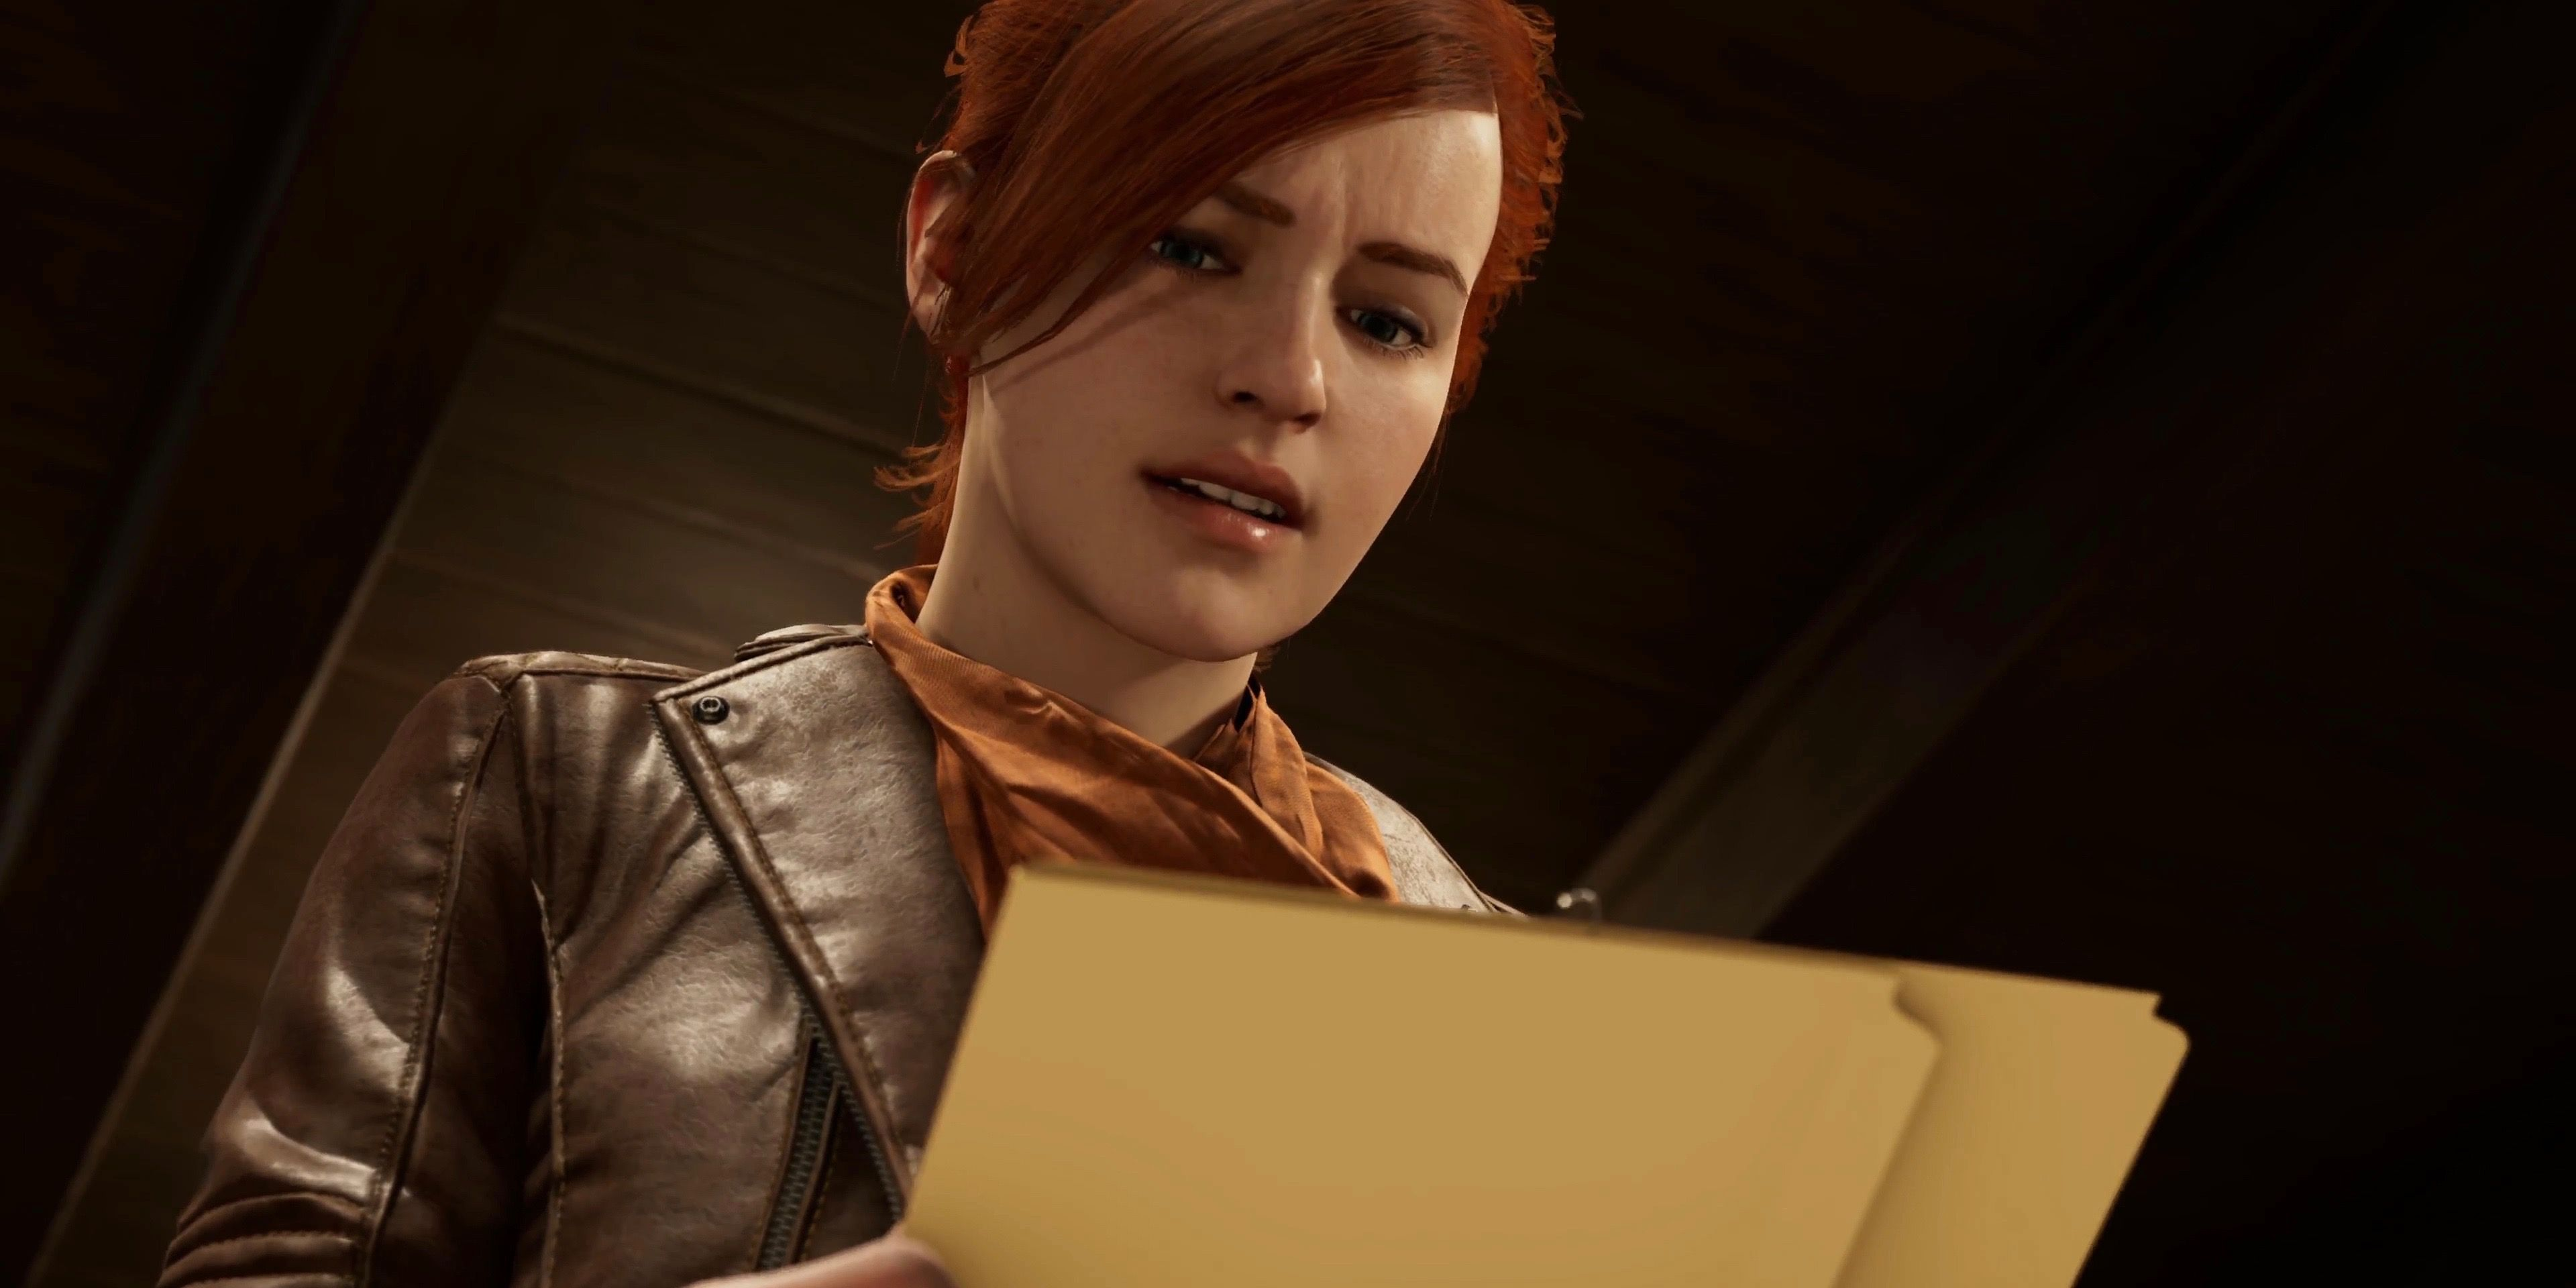 Spider-Man PS4: Early Concept Art For Mary Jane Watson Released